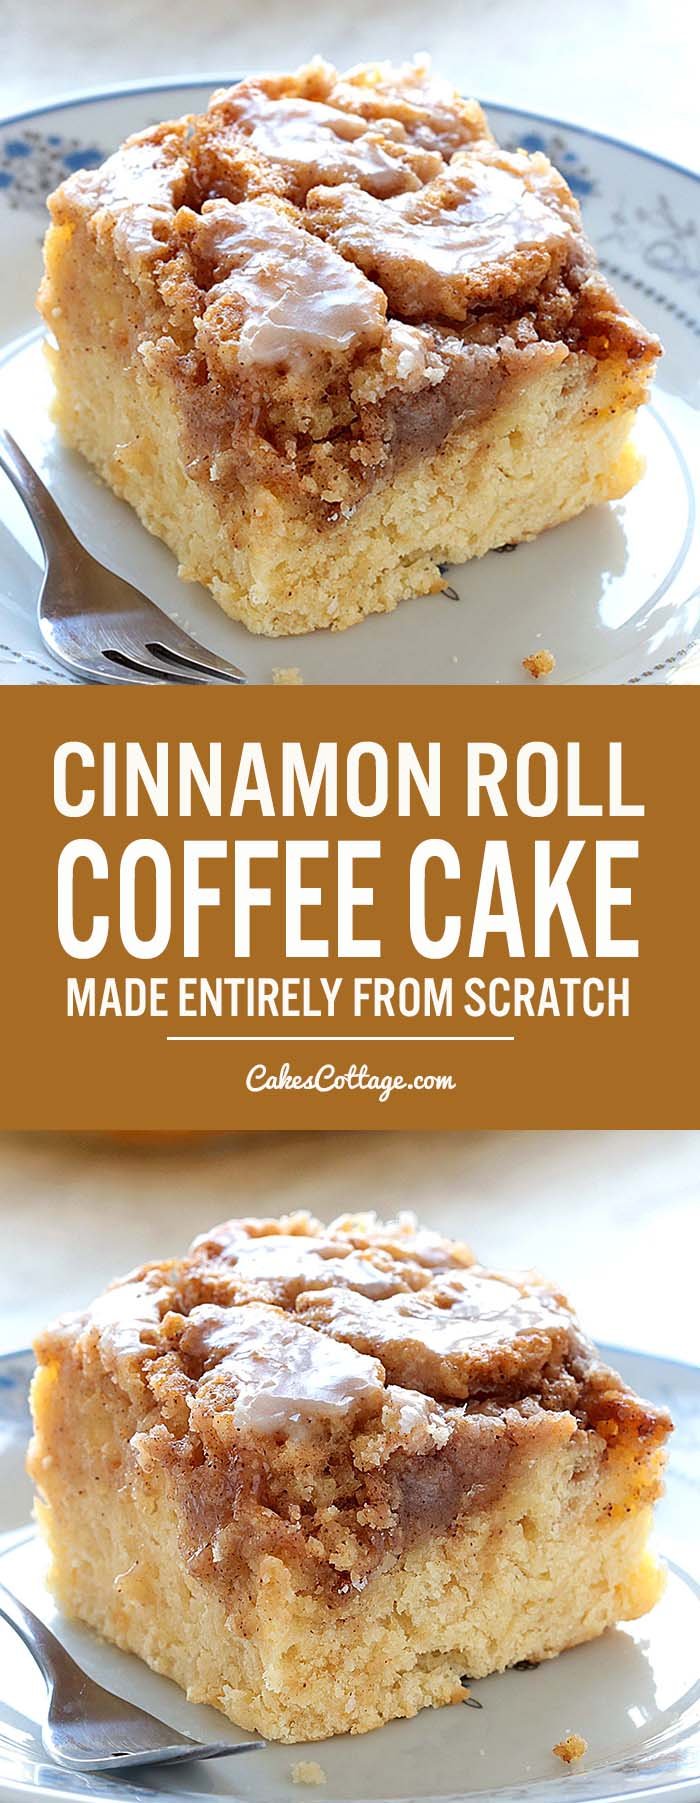 Easy Cinnamon Roll Coffee Cake Is Simple And Quick Recipe For Delicious Homemade